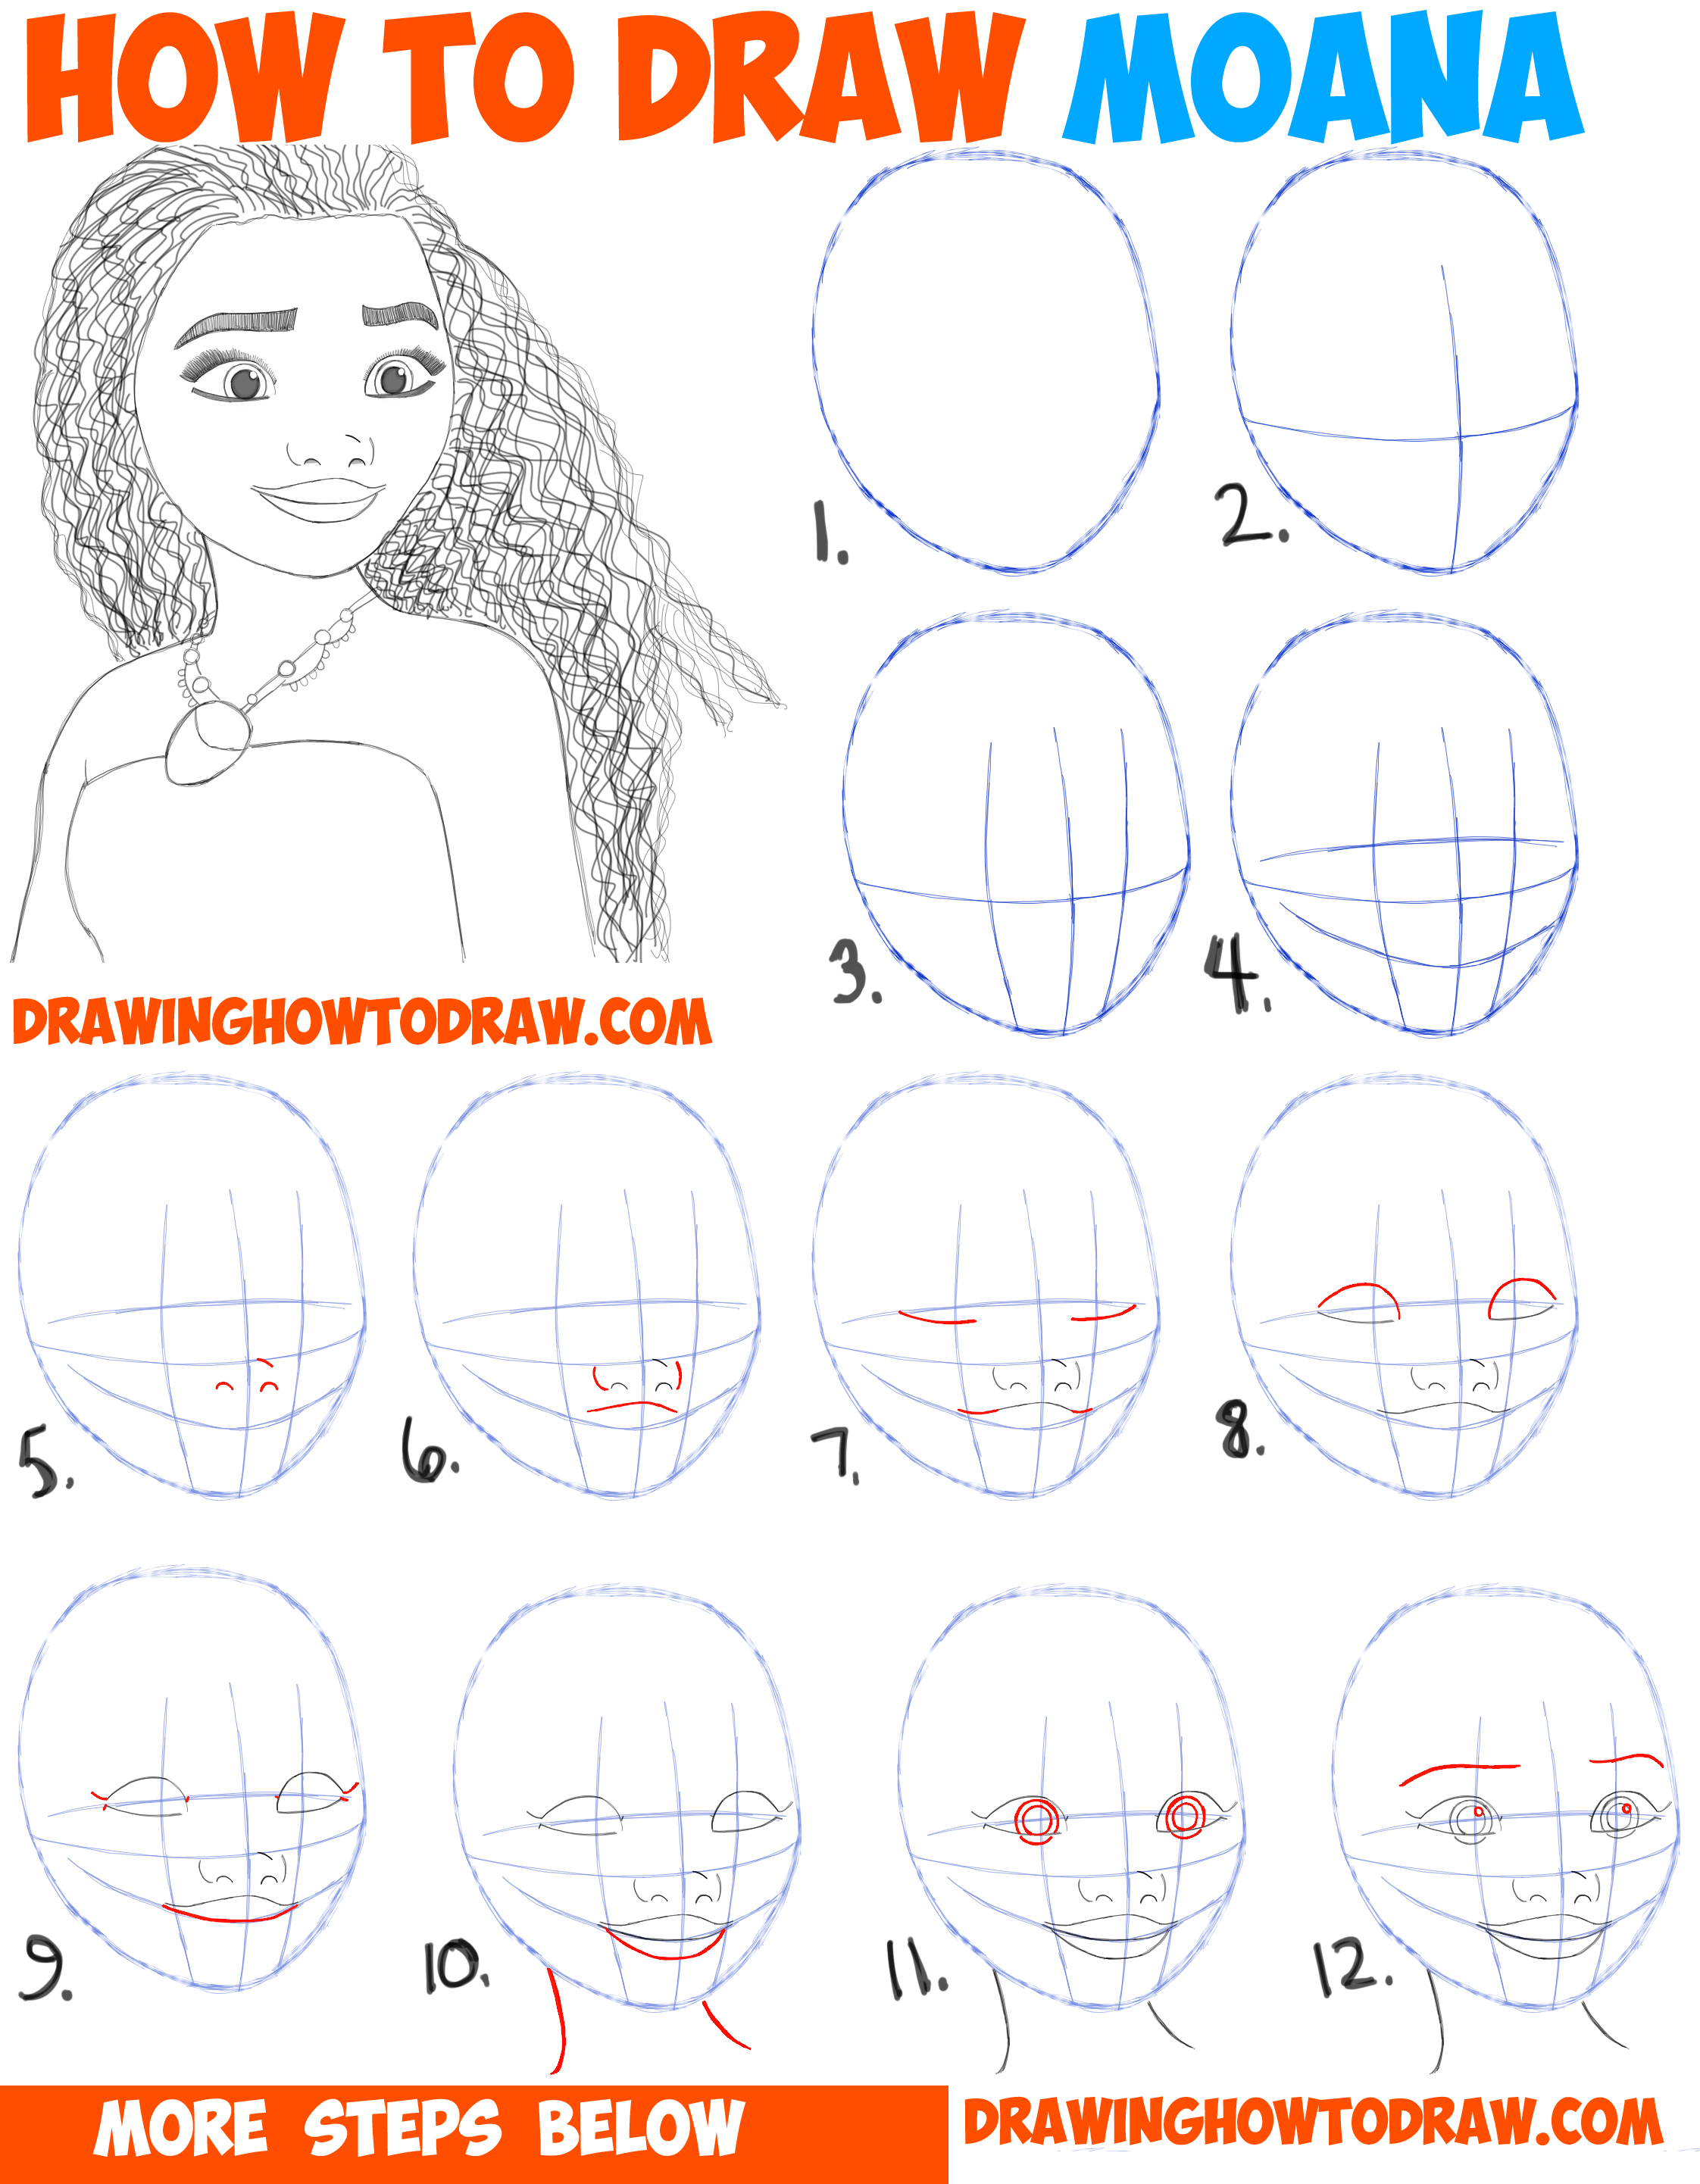 Uncategorized Disney Drawings Step By Step how to draw moana easy step by drawing tutorial for kids and beginners